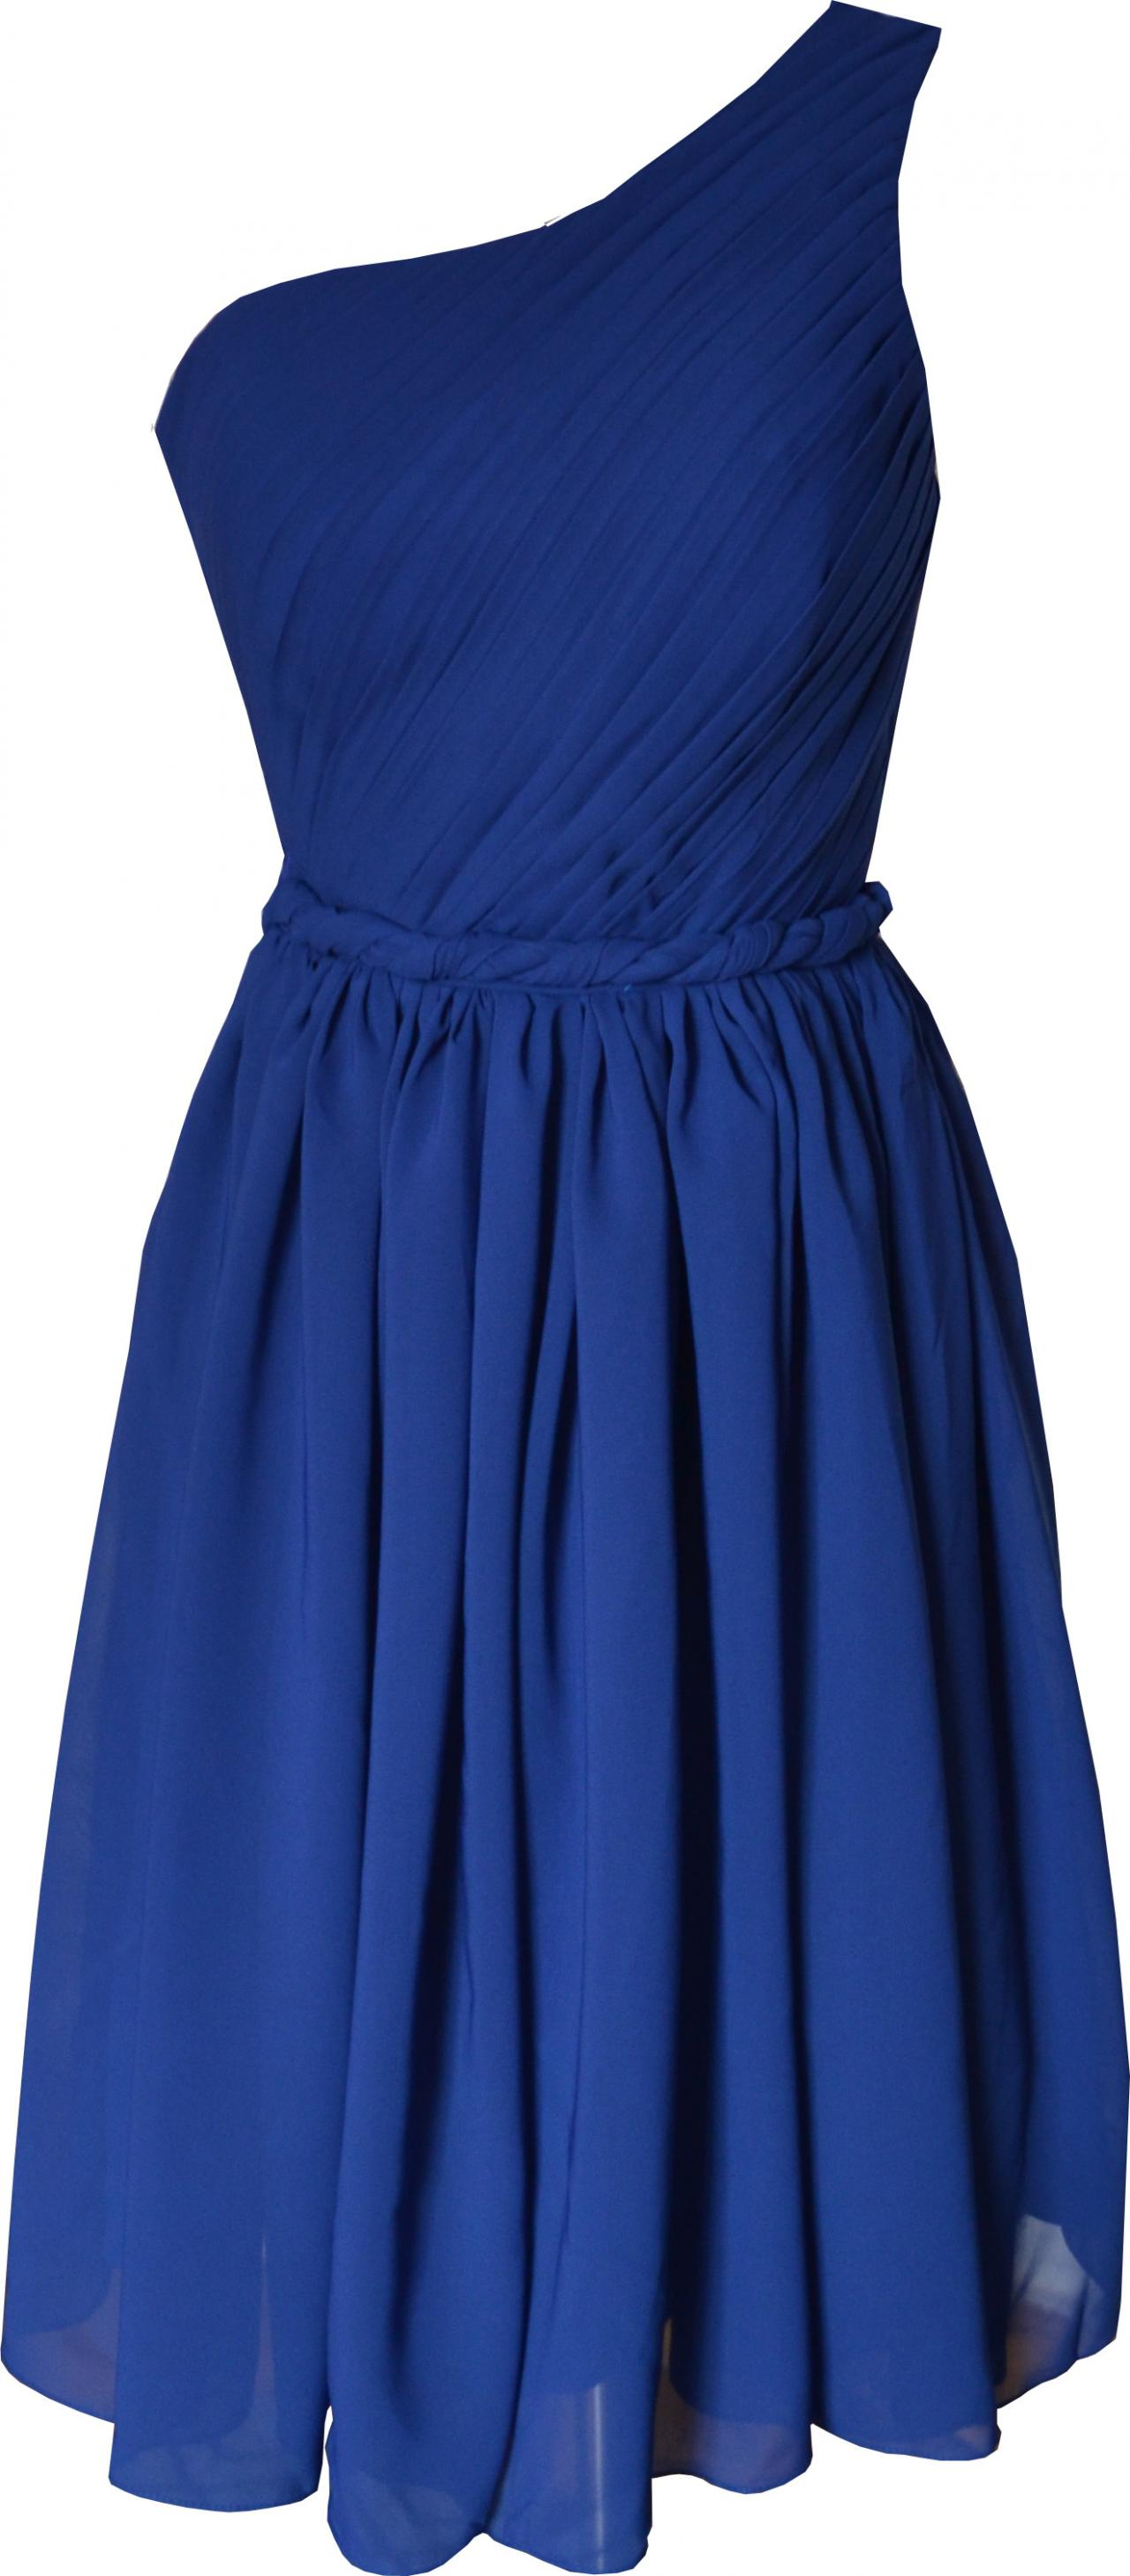 One Shoulder Royal Blue Simple Elegant Knee Length Short Prom Dress Party Bridesmaid Dress